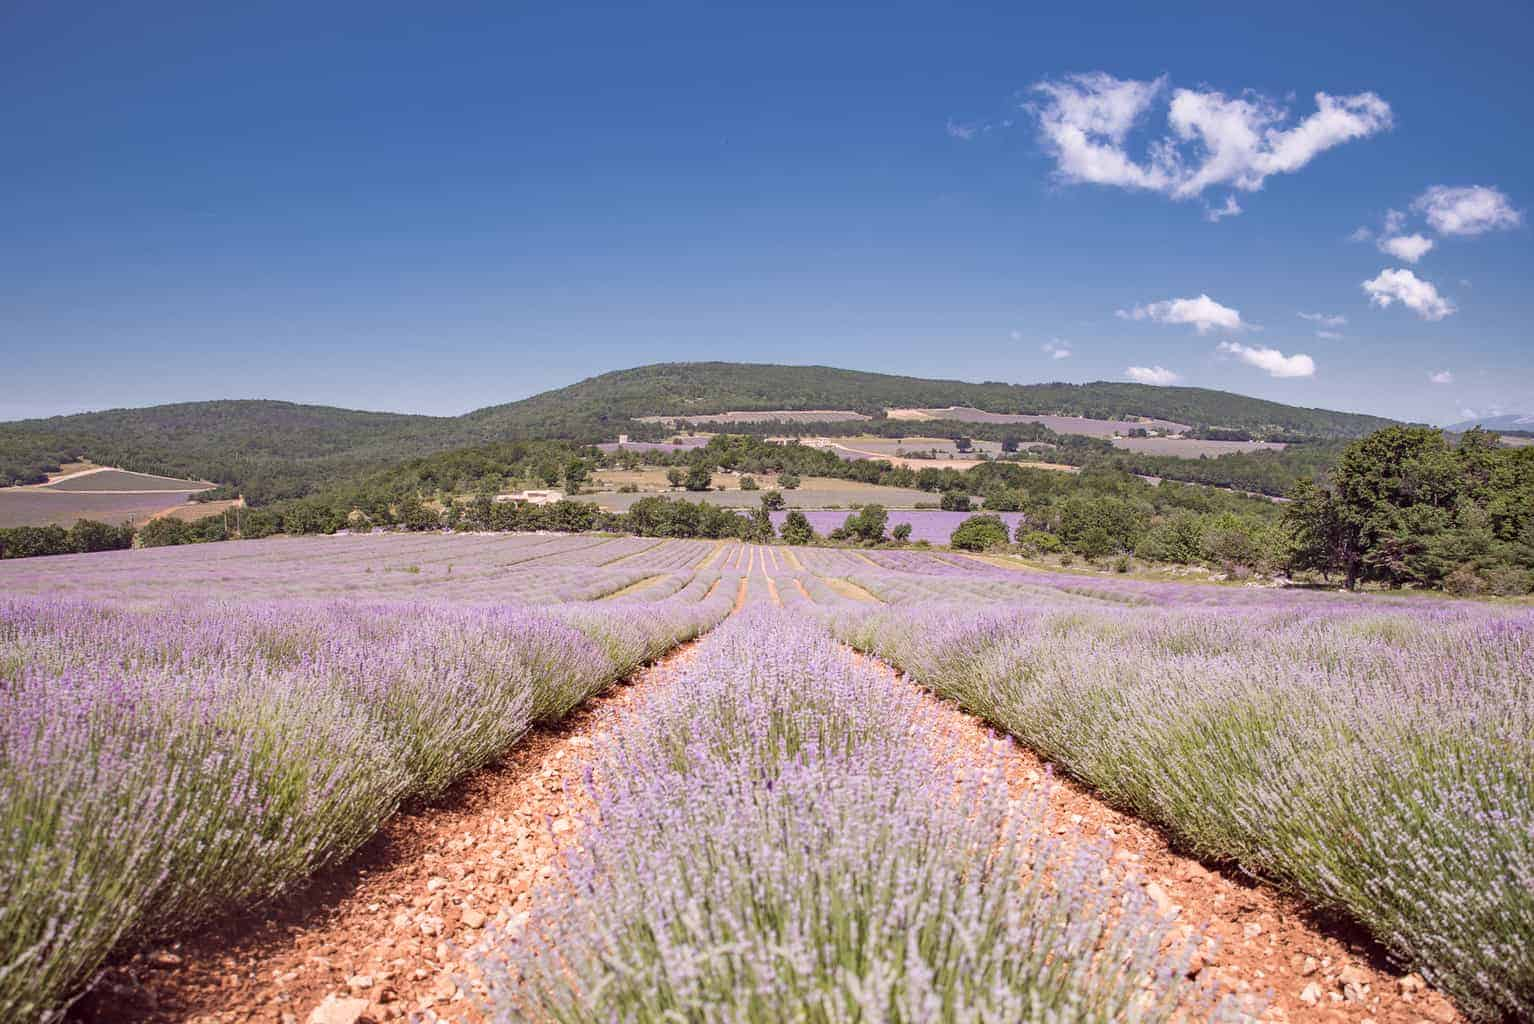 Lavender fields of Chateau du Bois.